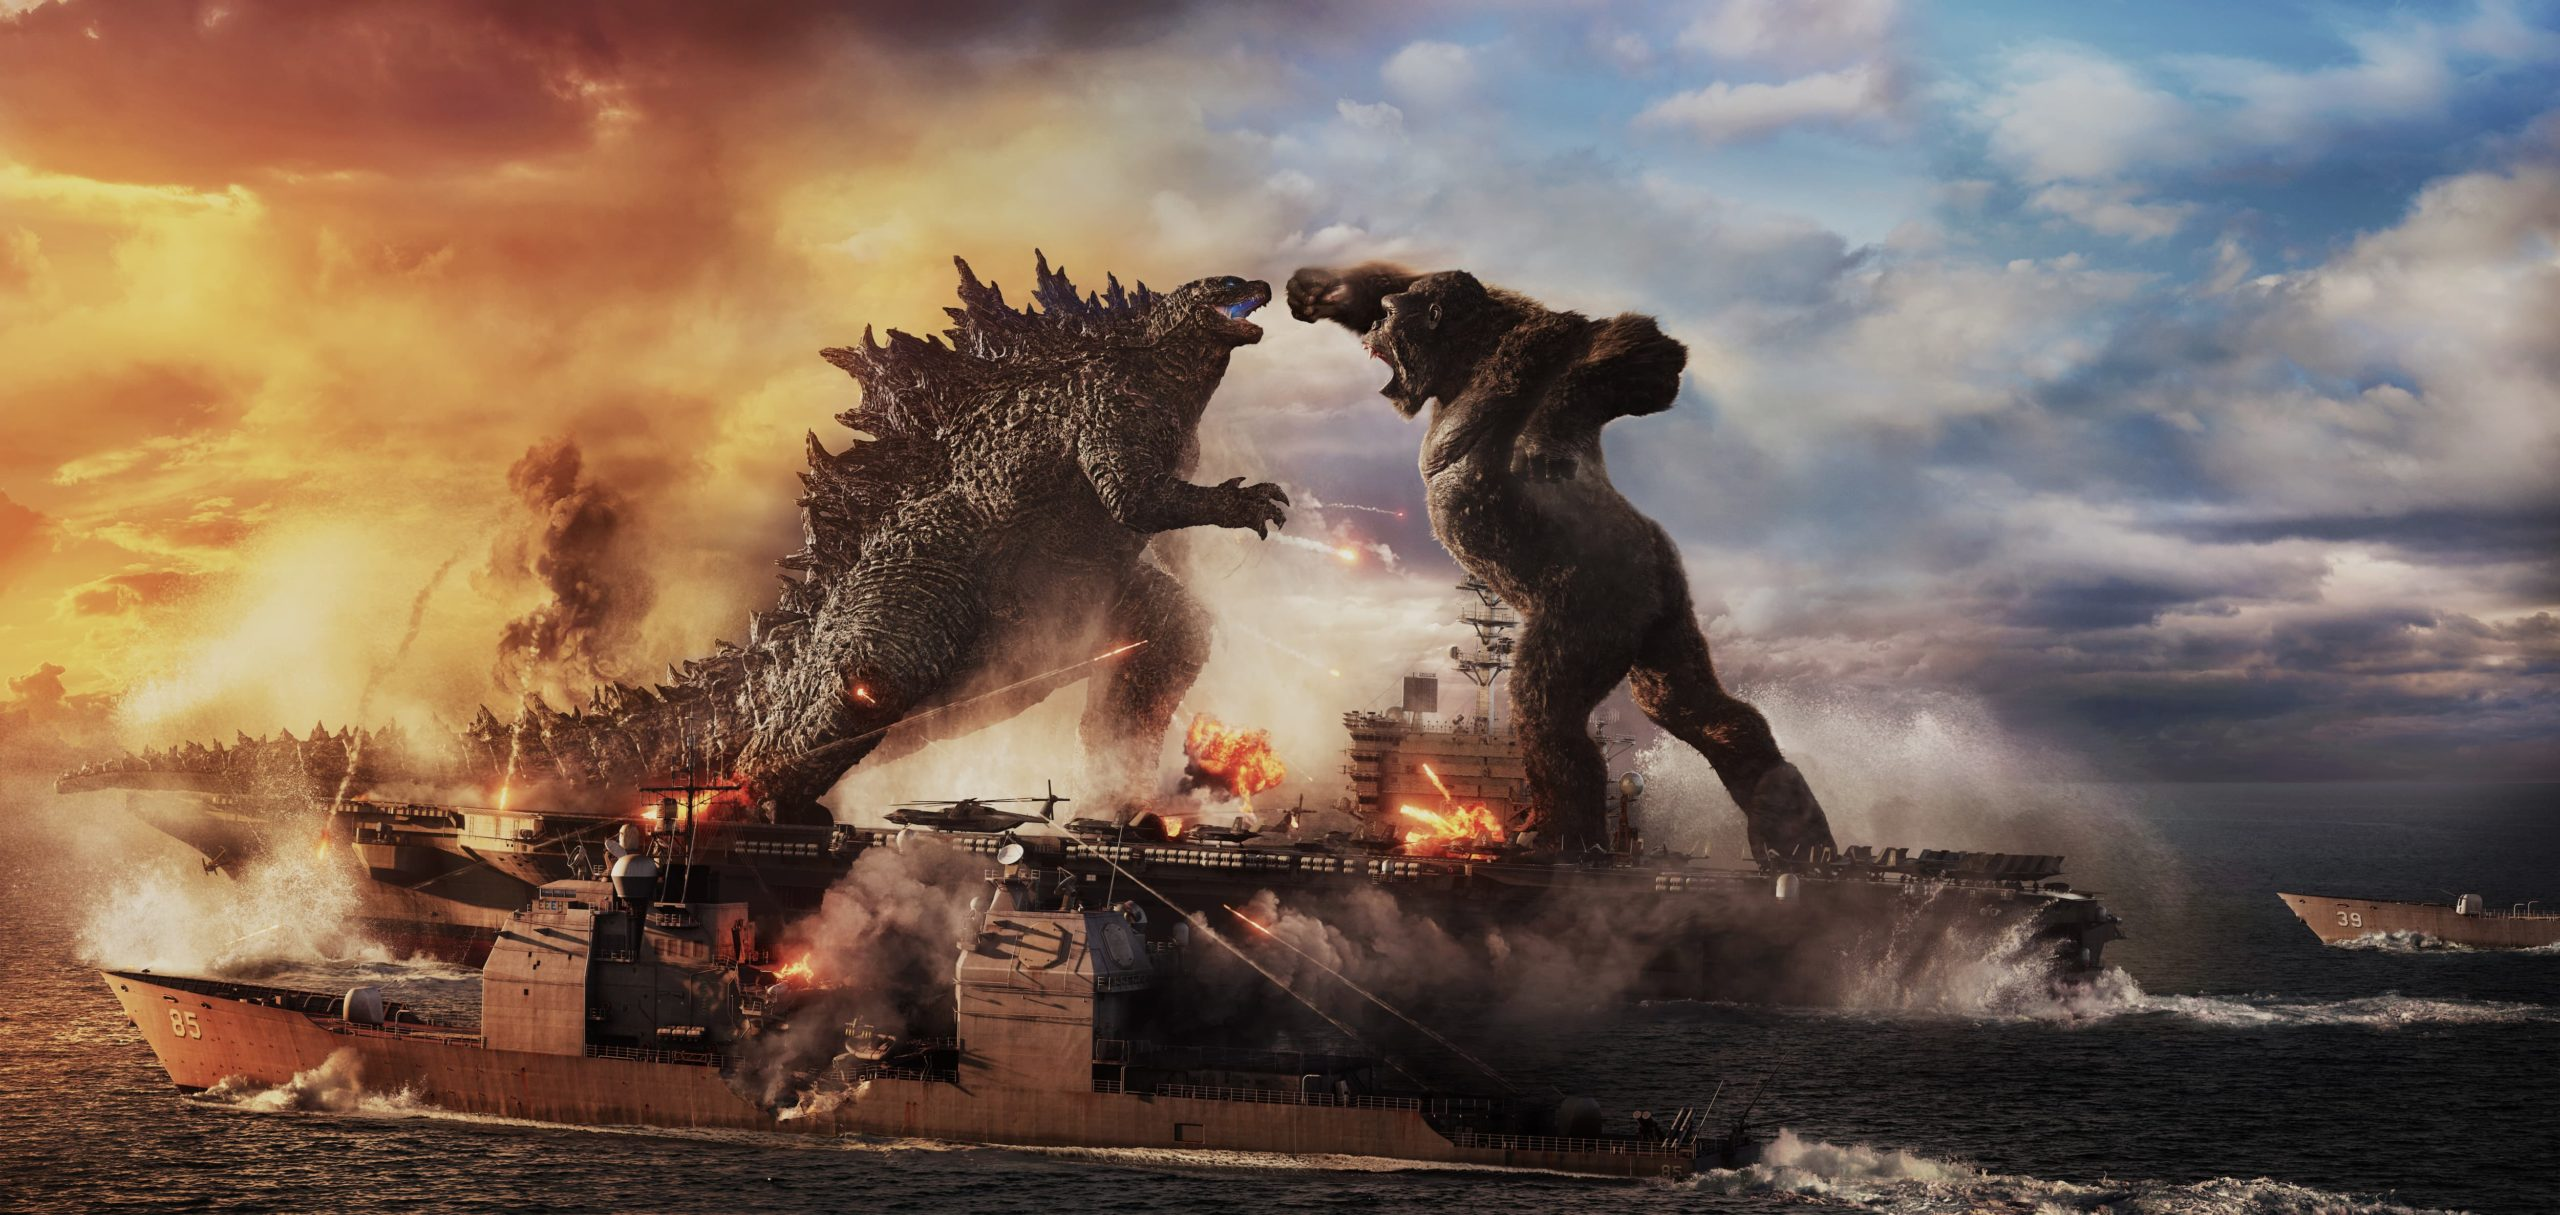 Godzilla vs Kong Movie Review